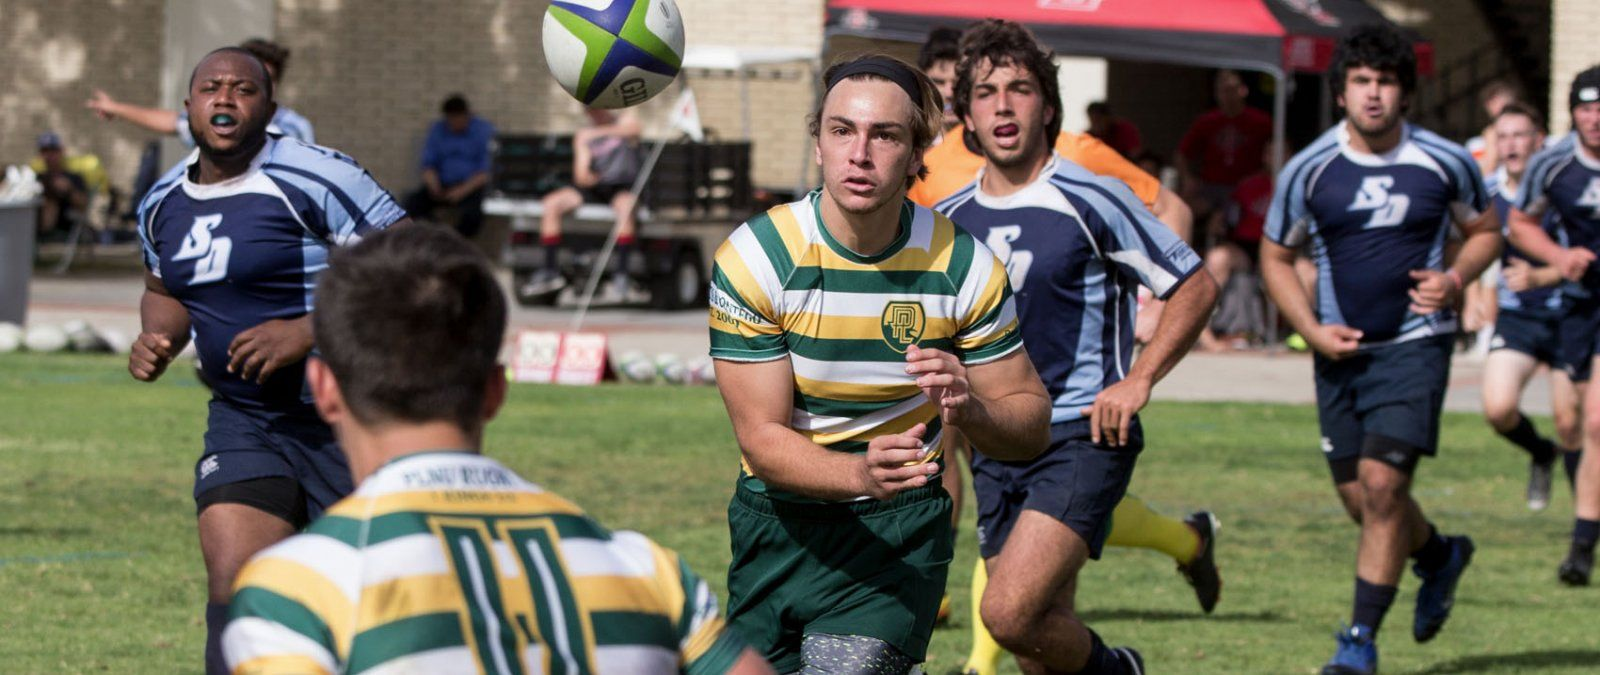 Point Loma Nazarene University rugby team competes against the University of San Diego in a local tournament